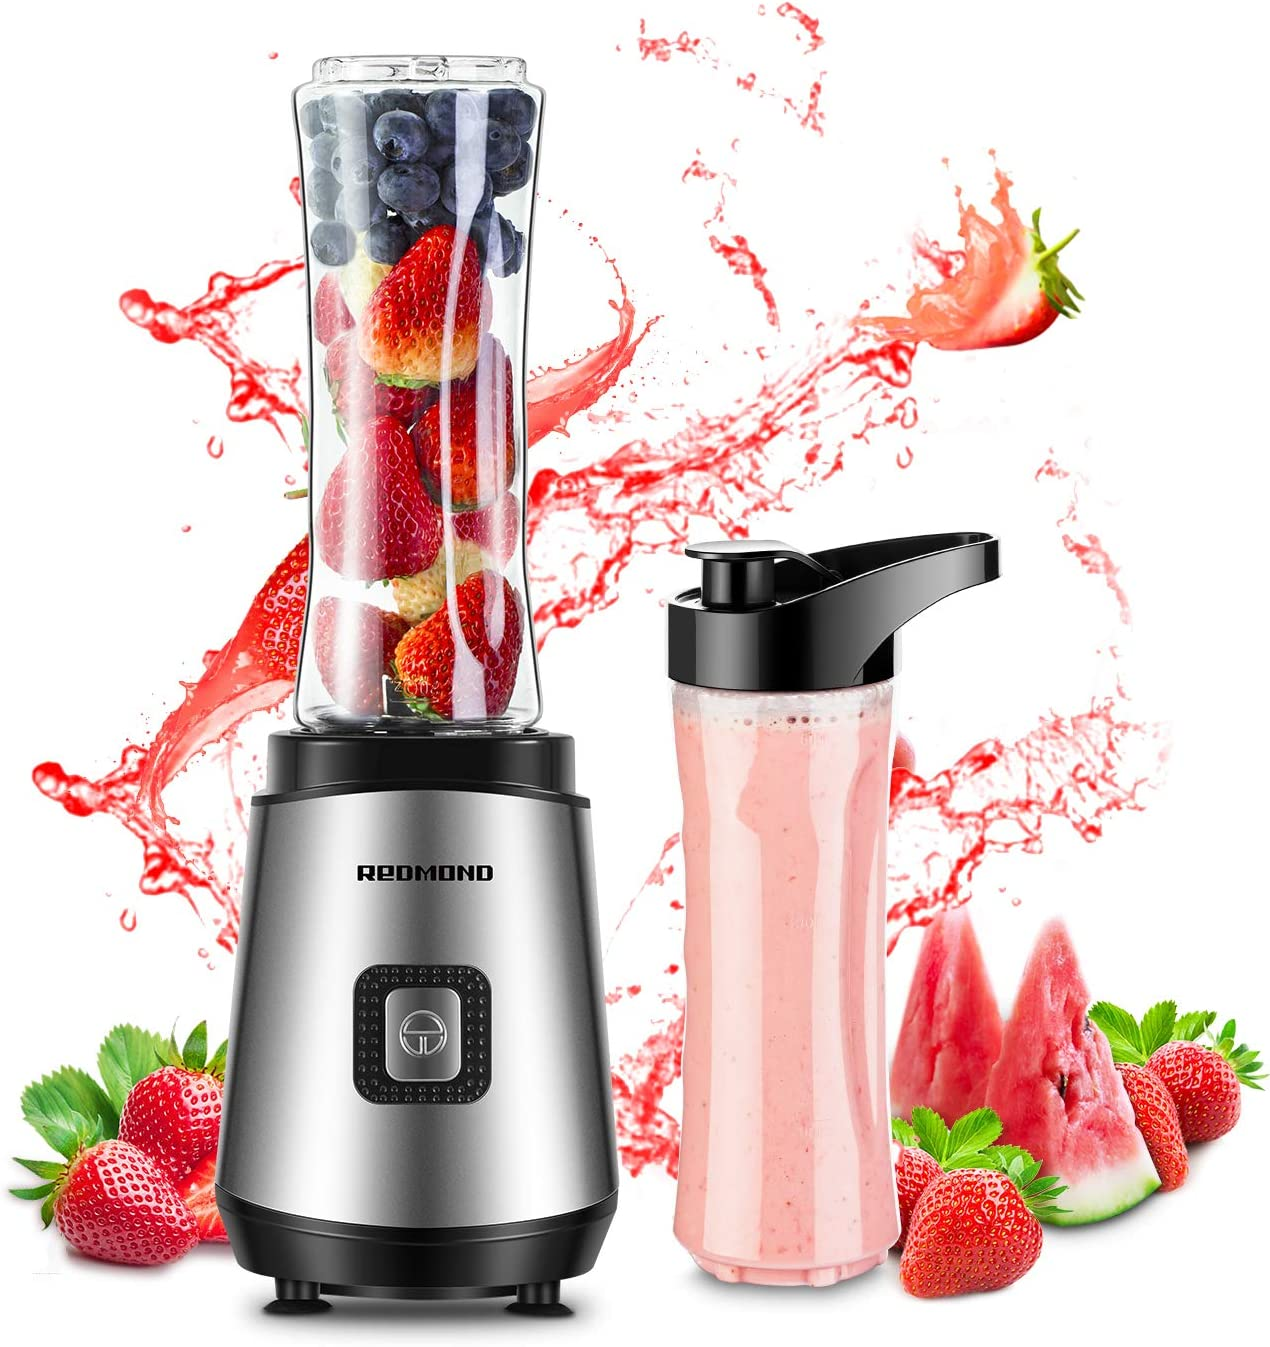 Redmond Smoothie Blender 20000 RPM Countertop Blender Personal Size with 20 oz Portable Bottle for Milk Shakes Fruit Vegetable 300W BPA Free